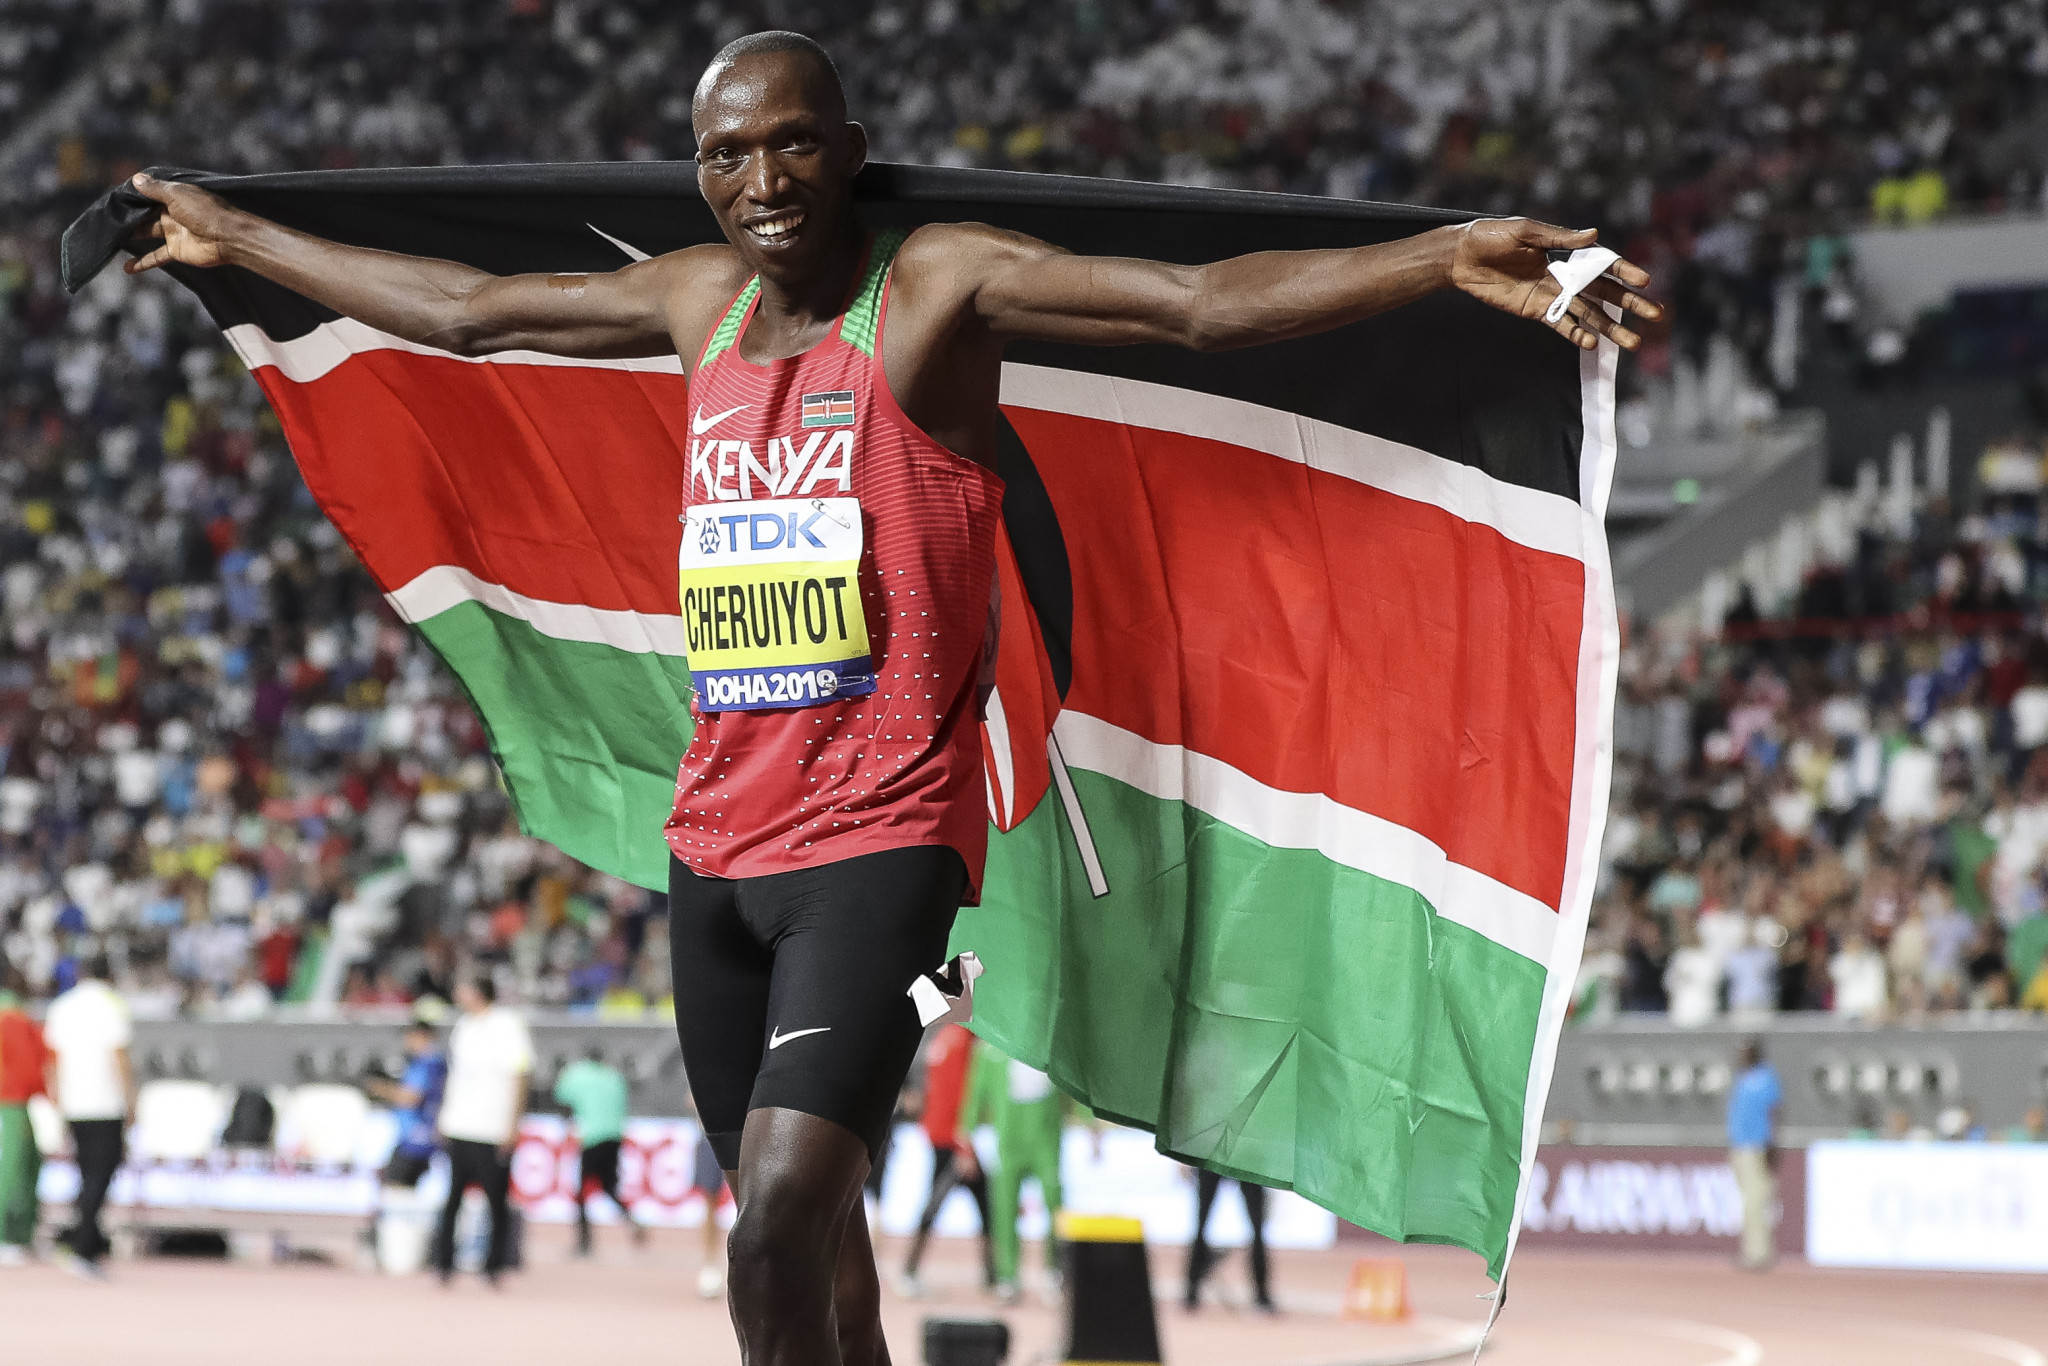 Cheruiyot to compete in virtual 2000m race at Impossible Games